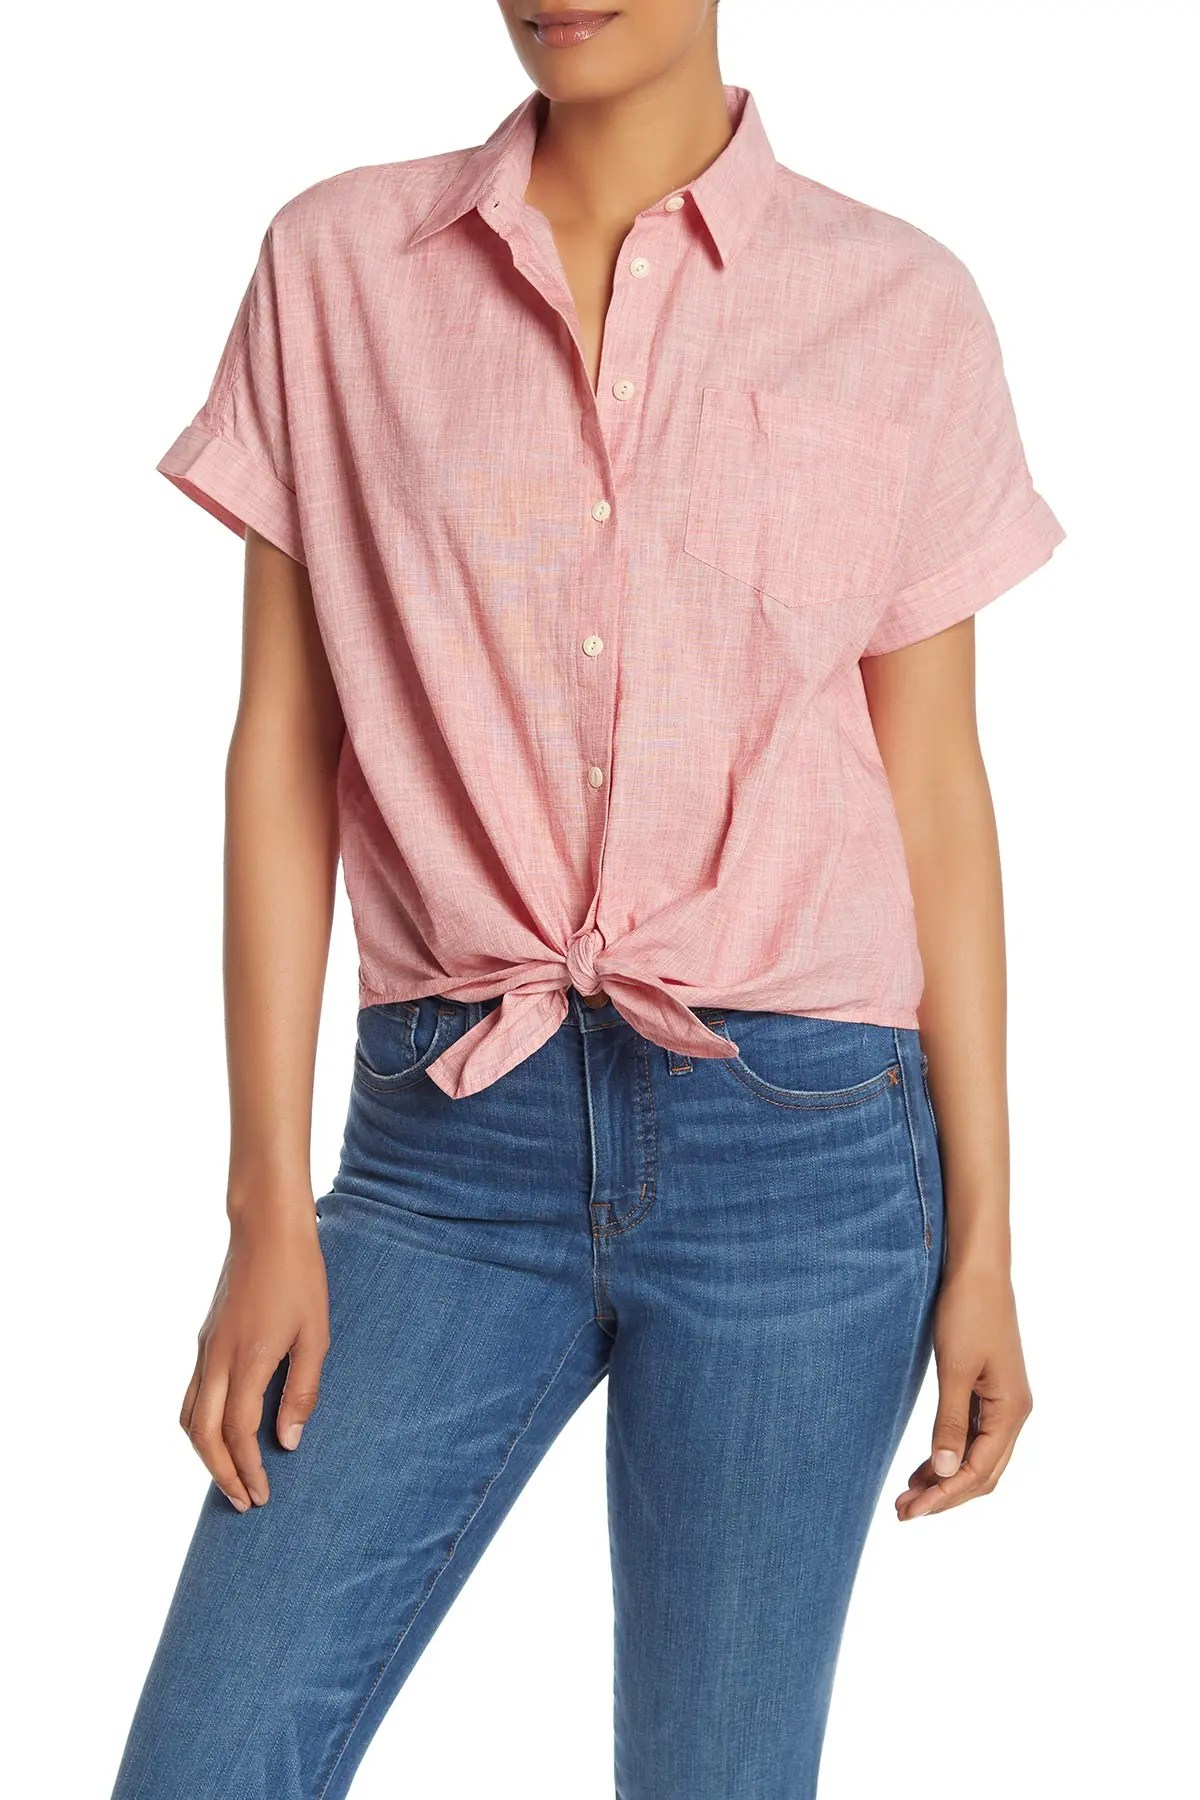 madewell end on end tie front button down t shirt nordstrom rack